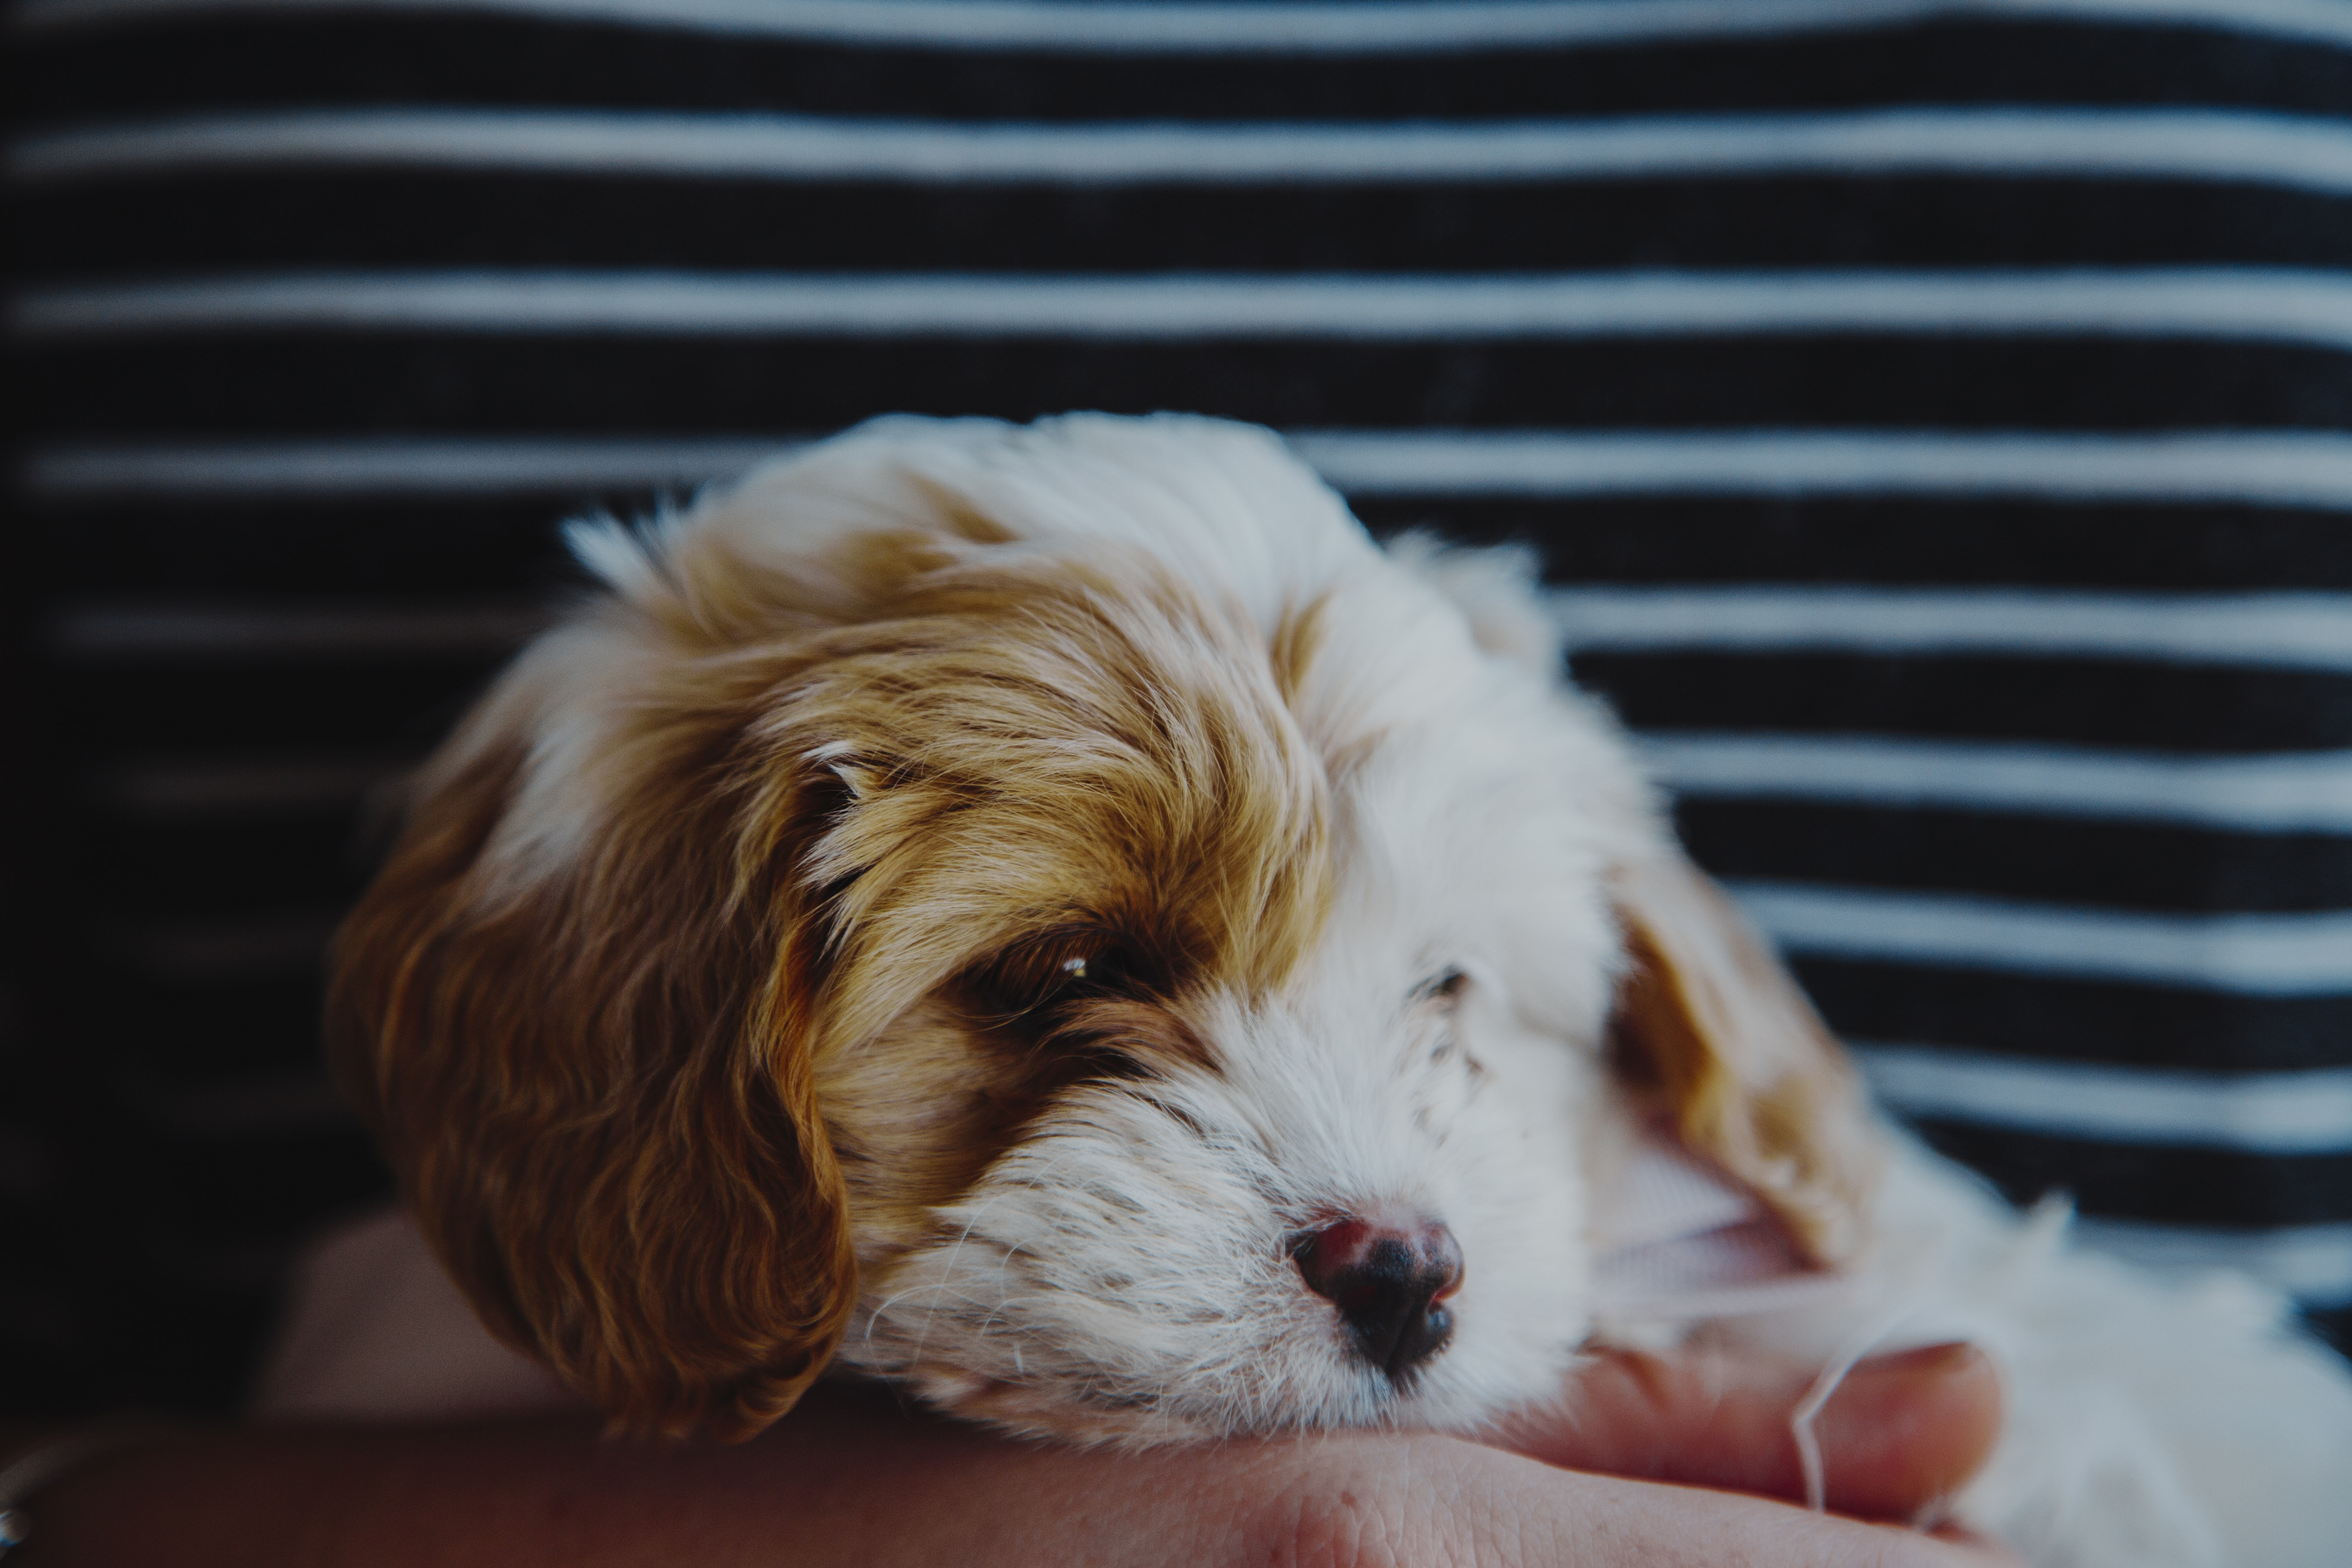 Adorable fluffy puppy rests its head in a person's hands